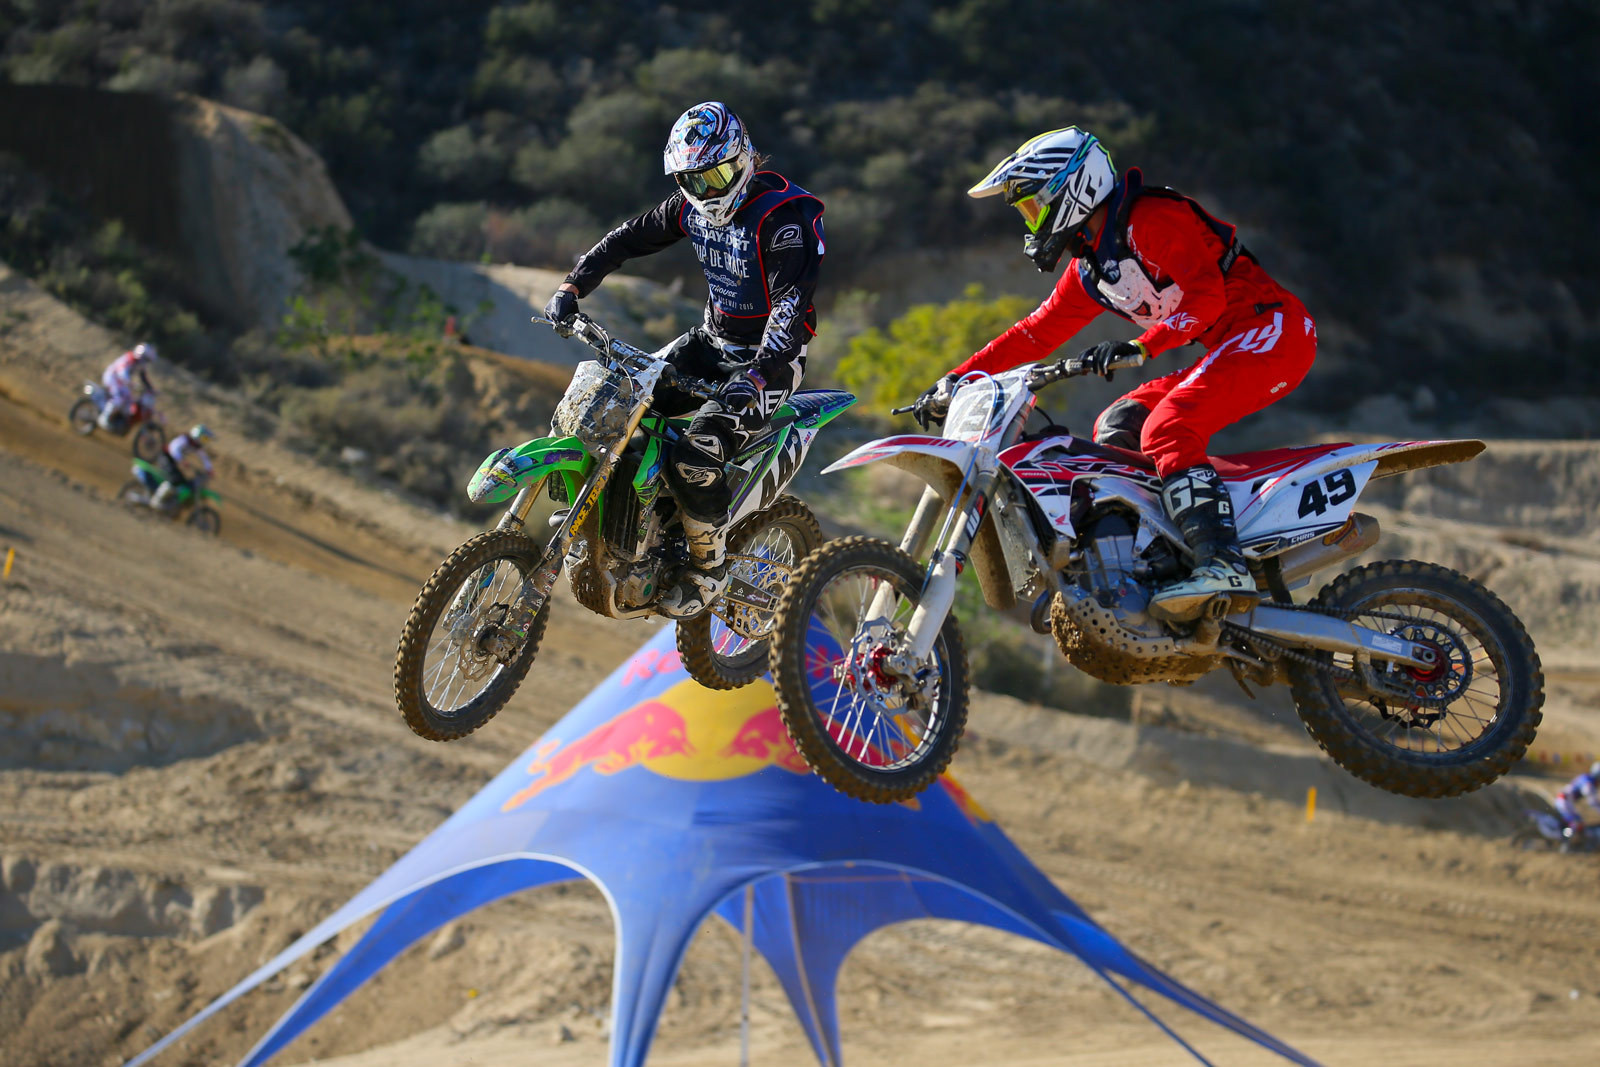 Deven Raper and Billy Lea - Sunday at Red Bull Day In The Dirt 18  - Motocross Pictures - Vital MX